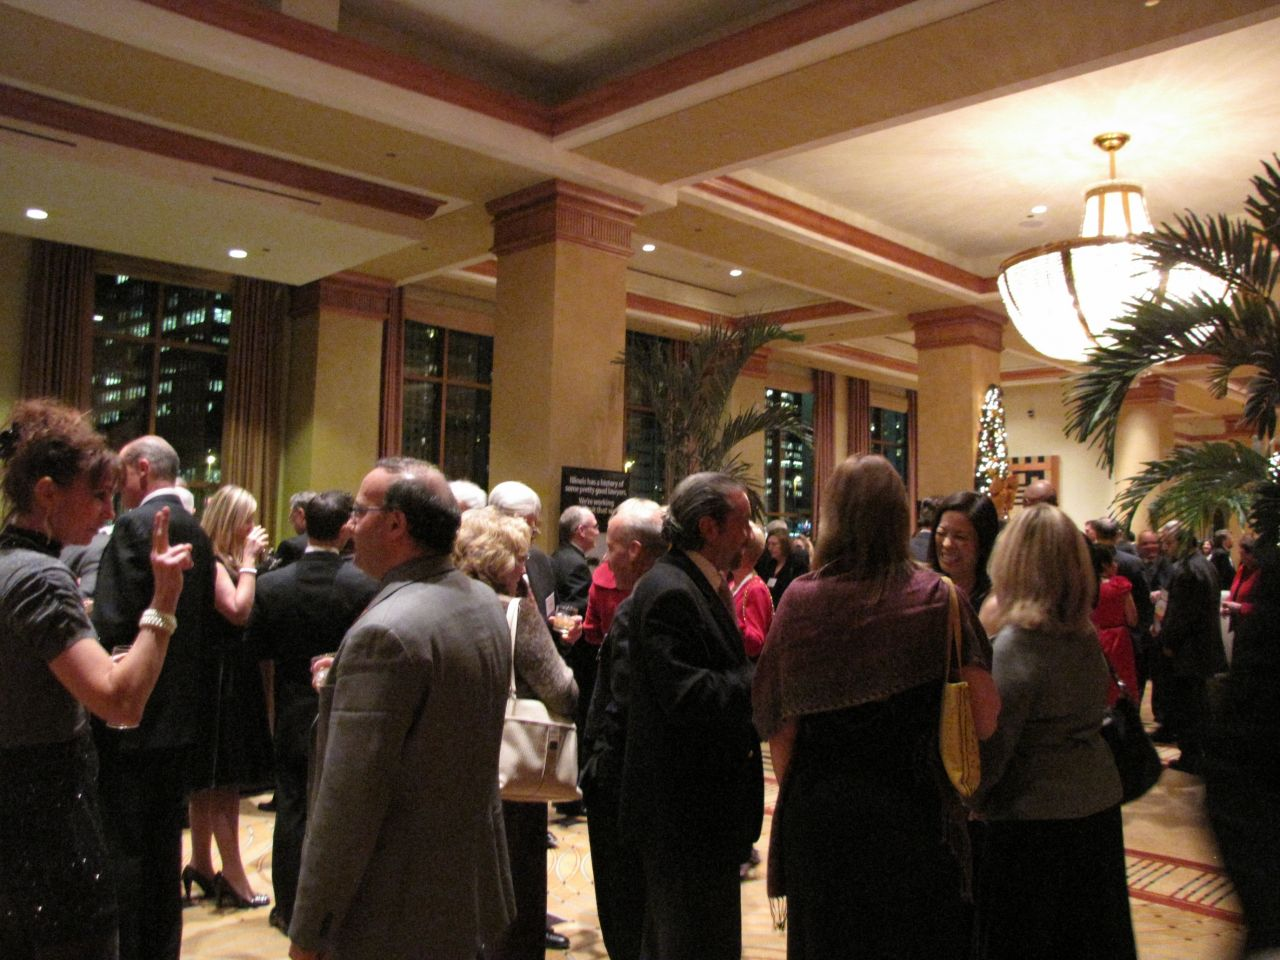 The Supreme Court Dinner reception at the Sheraton Chicago Hotel & Towers